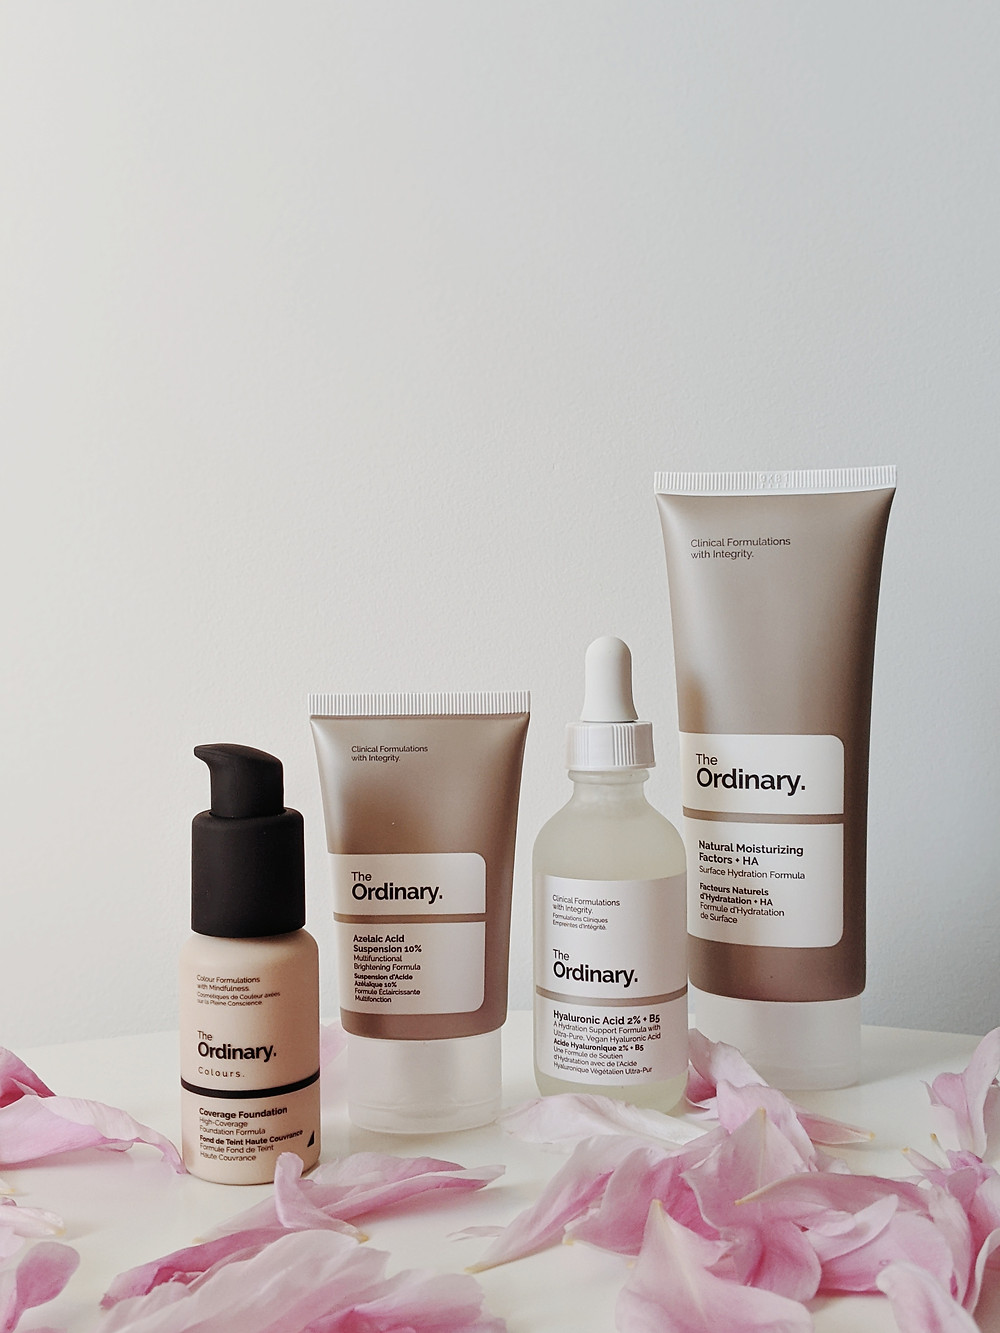 Evie Studios the ordinary skin care product shot sitting with flower petals